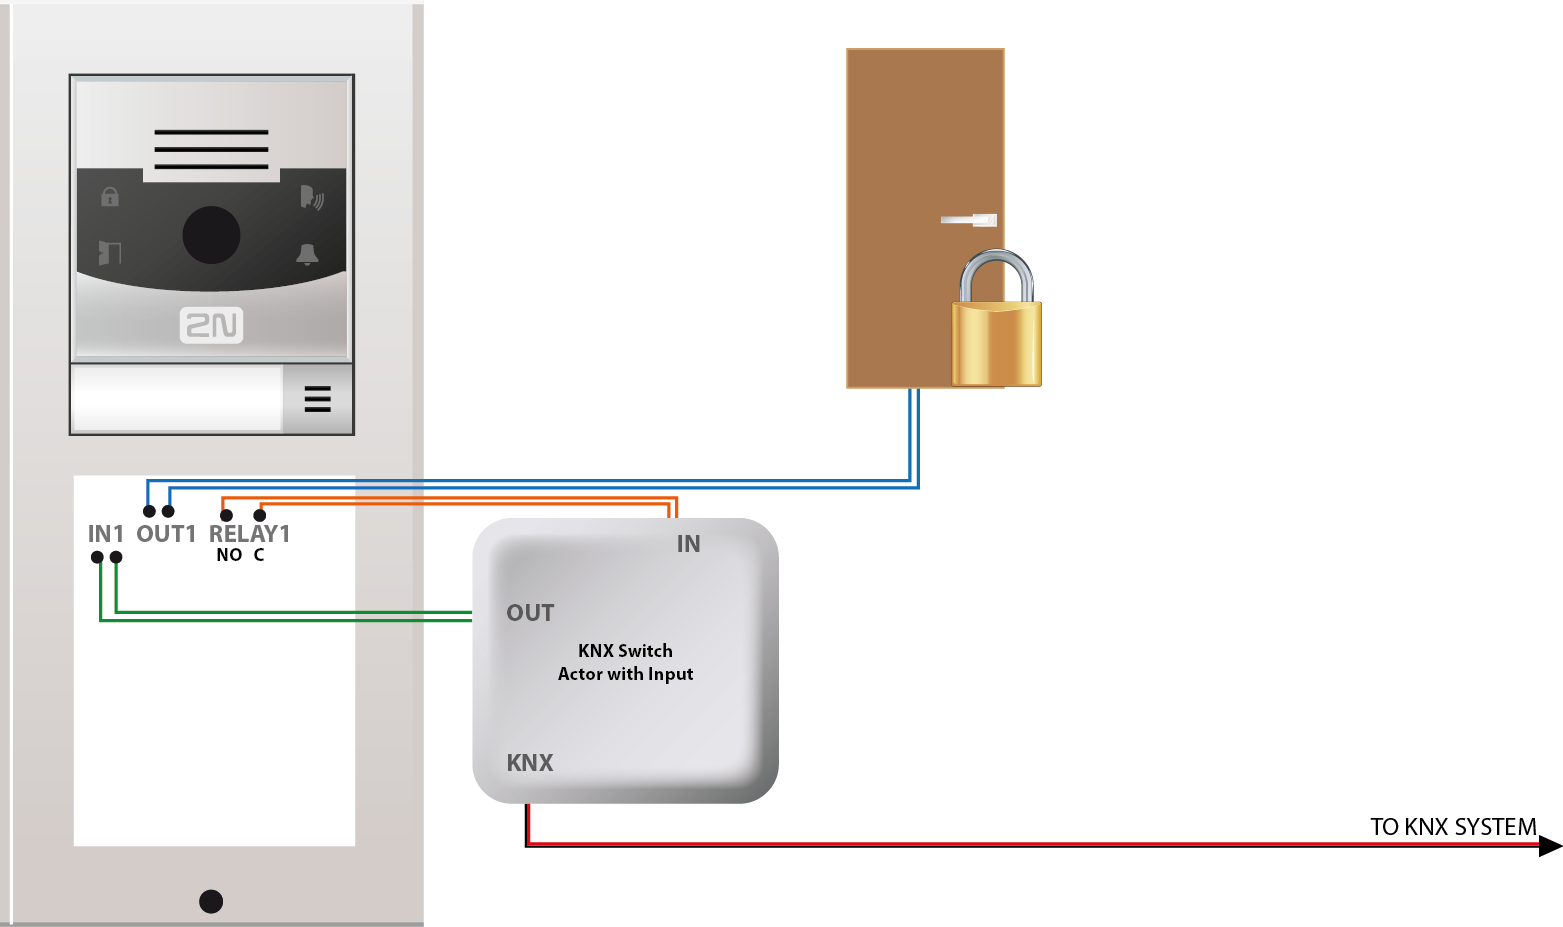 Helios 2n Wiring Diagram Small Appliance Knx Connection Of The Ip Intercom And System Faq Wiki A Kit For Ford 2000 Tractor